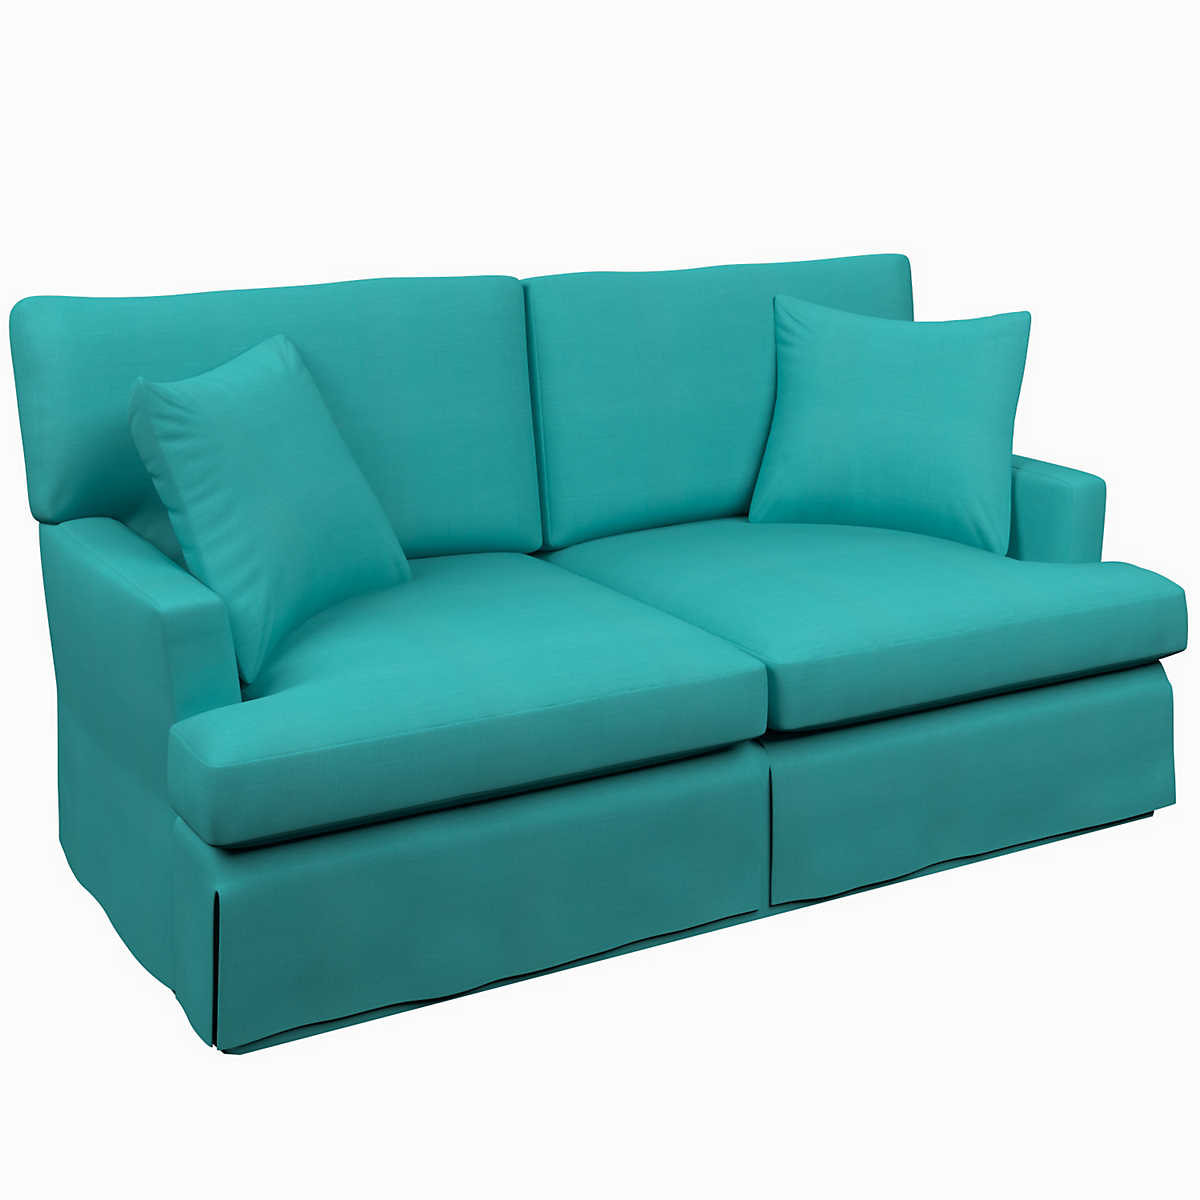 Estate Linen Turquoise Saybrook 2 Seater Slipcovered Sofa Furniture